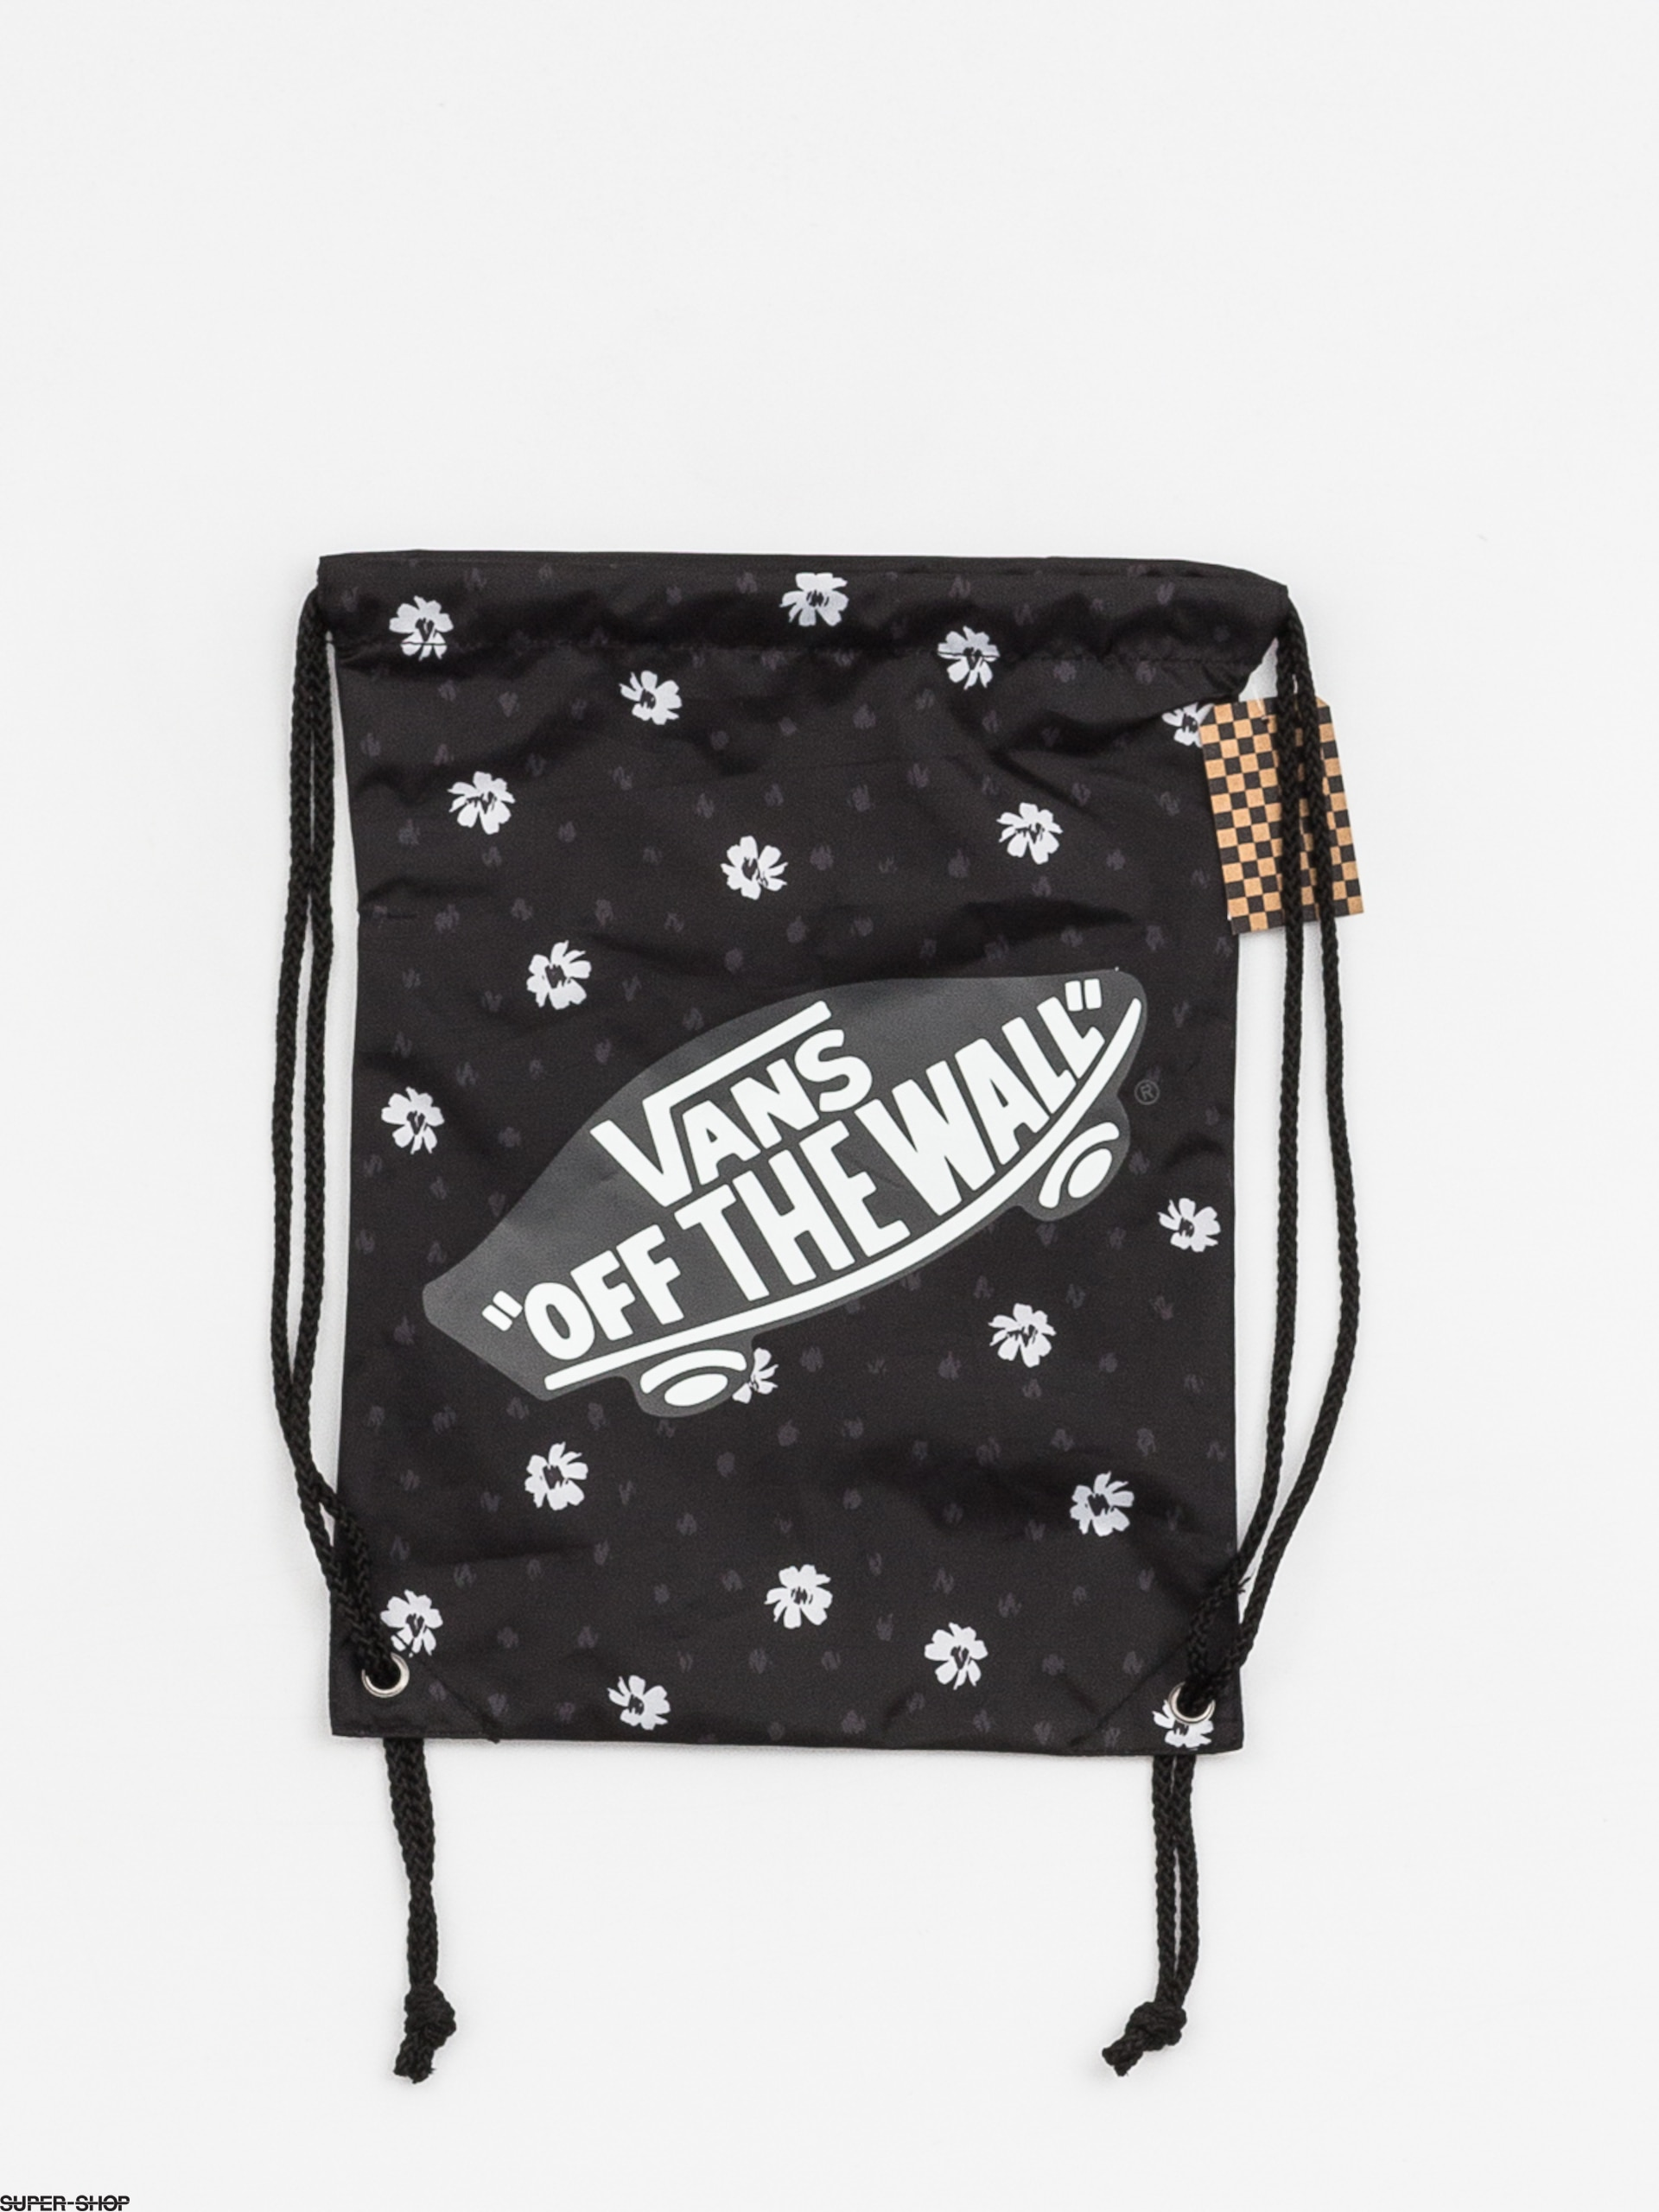 c7db7f9c73 961785-w1920-vans-backpack-benched-bag-wmn-black-abstract-daisy.jpg